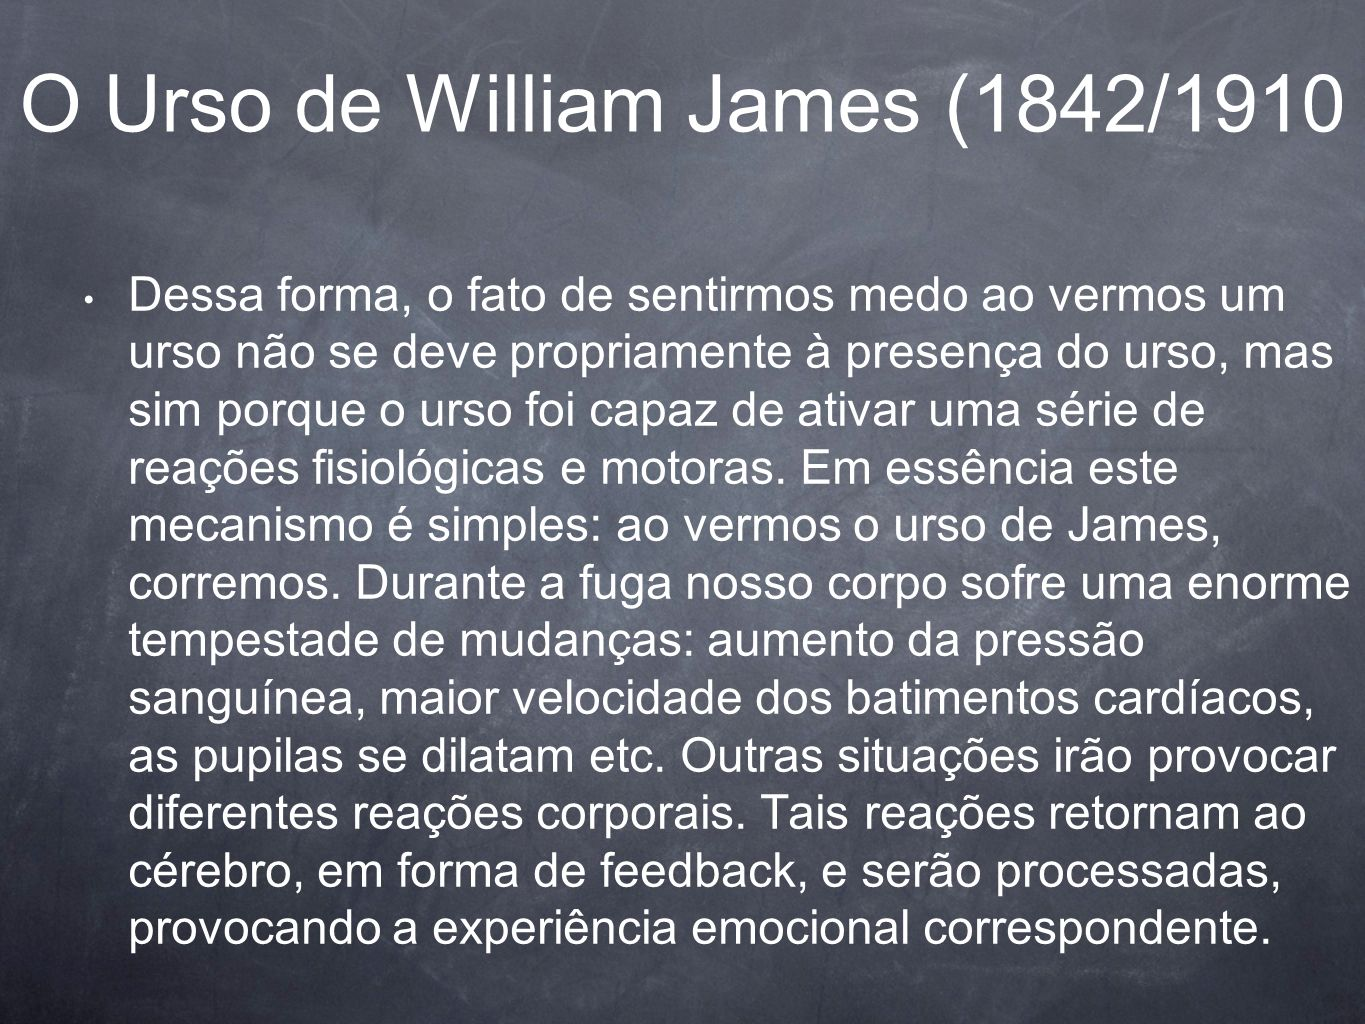 O Urso de William James (1842/1910